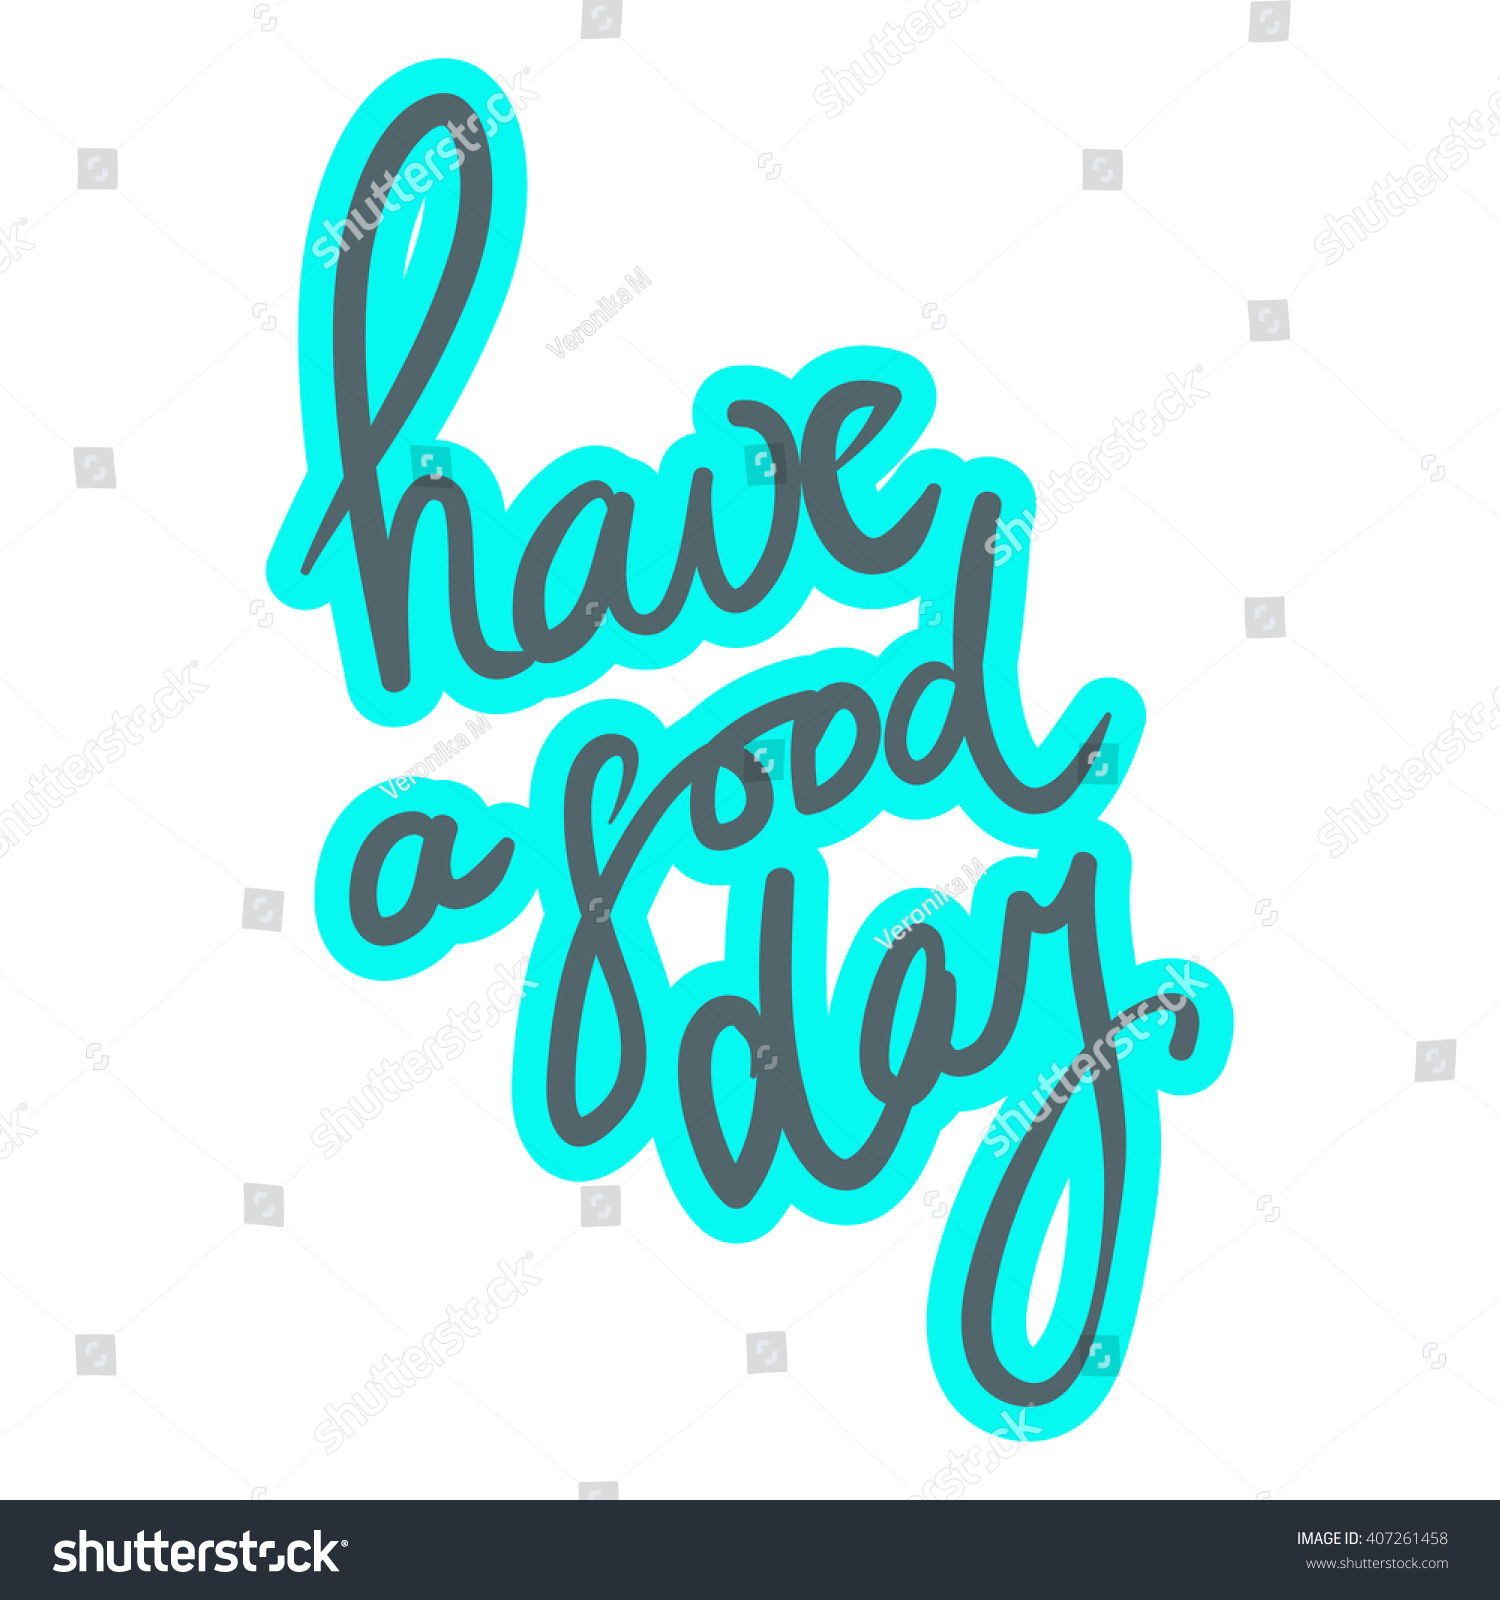 Have good day greeting card modern stock vector 407261458 have a good day greeting card modern calligraphic style hand lettering and custom typography kristyandbryce Gallery